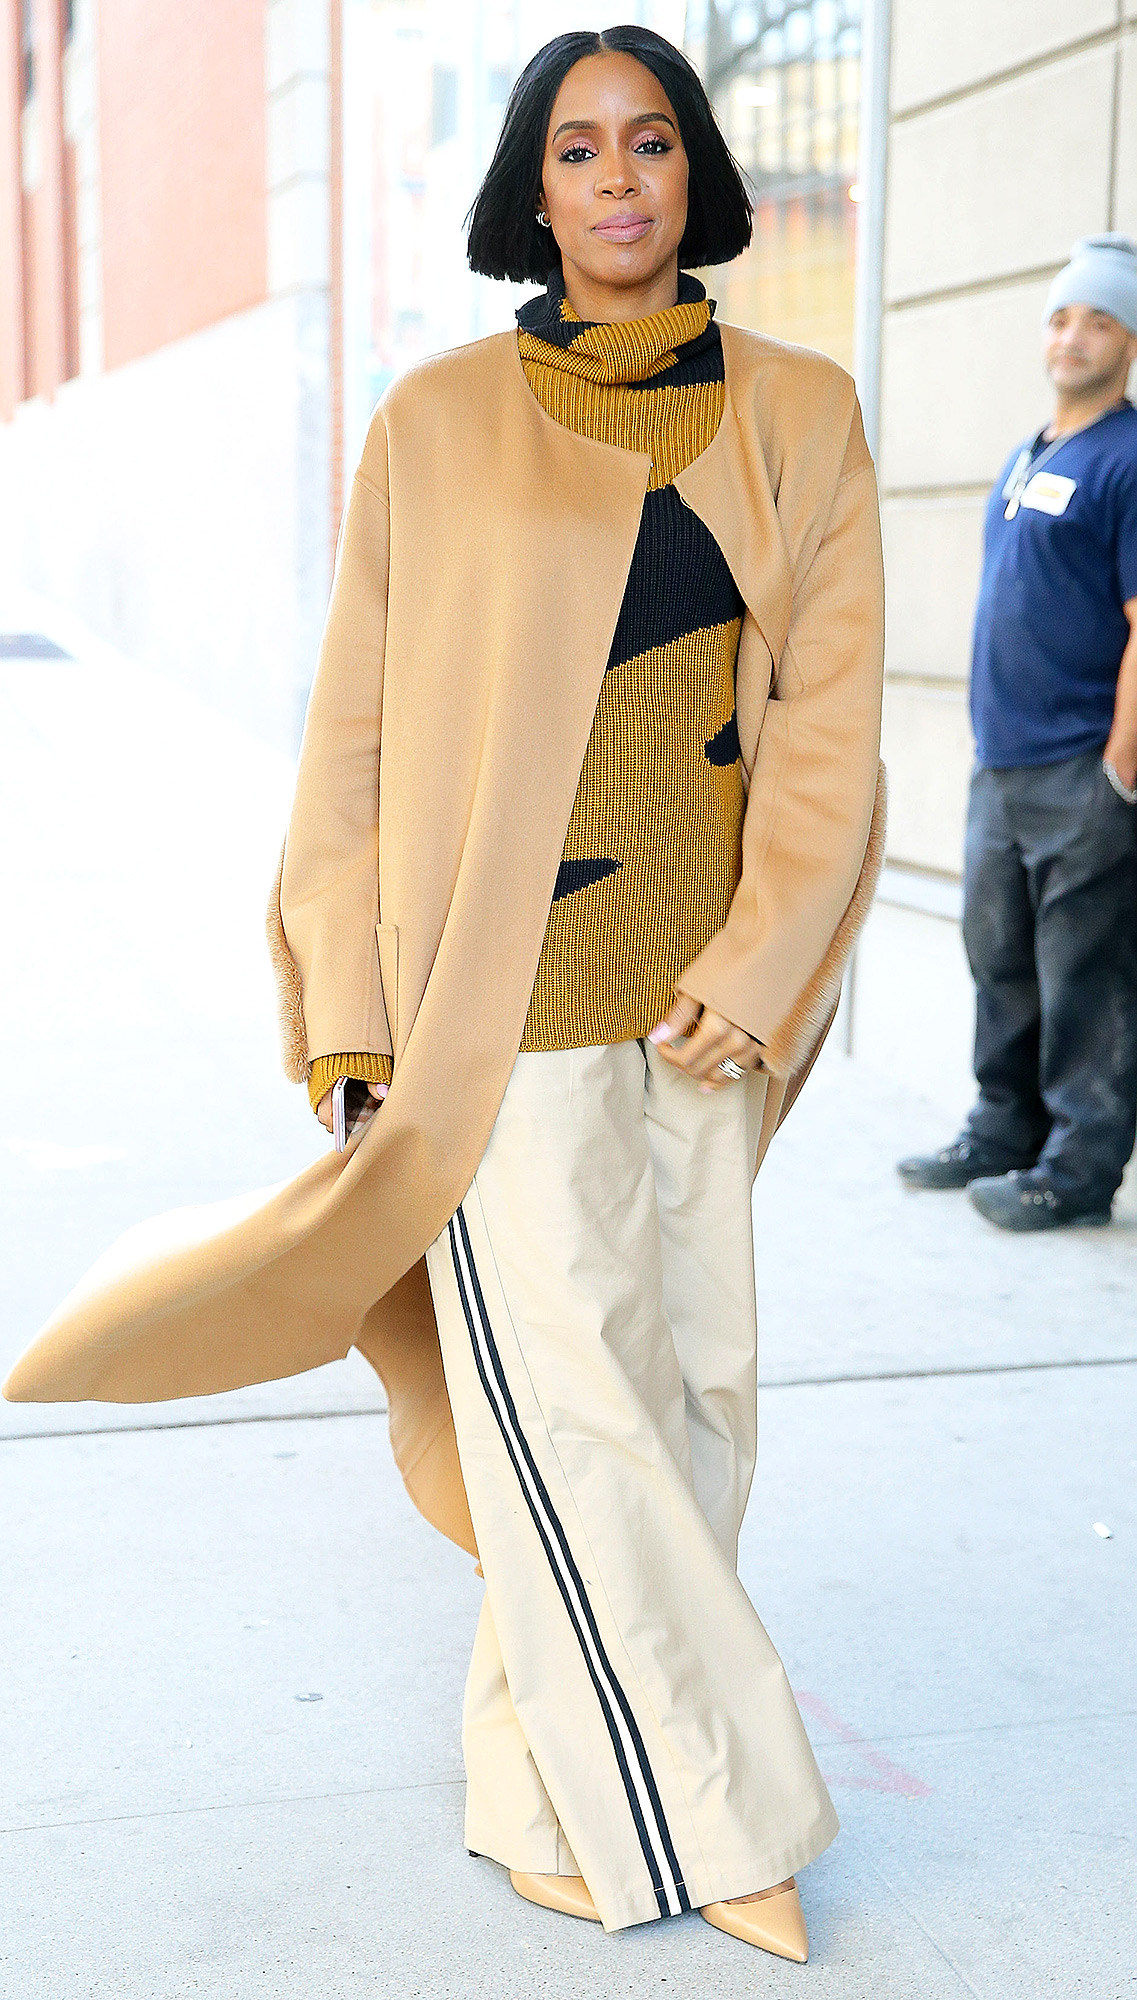 Kelly Rowland spotted wearing all tan ensemble in New York City